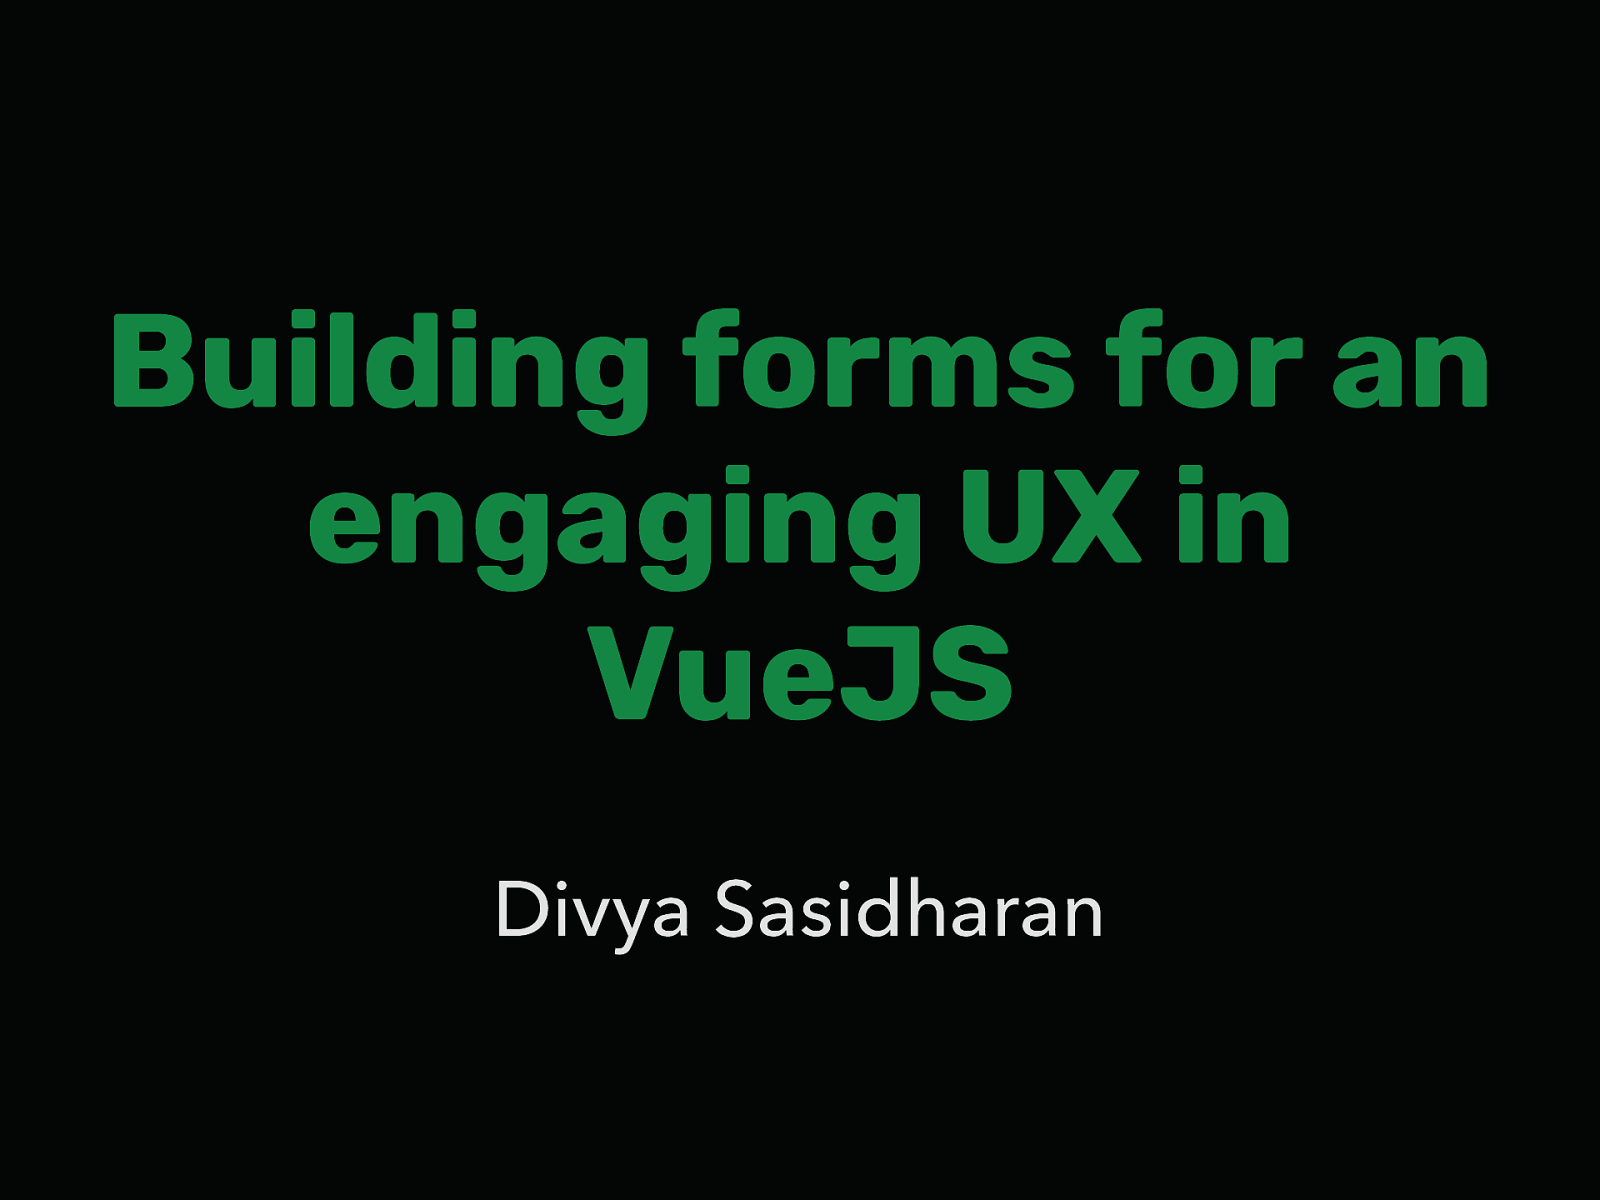 Building forms for an engaging UX in VueJS